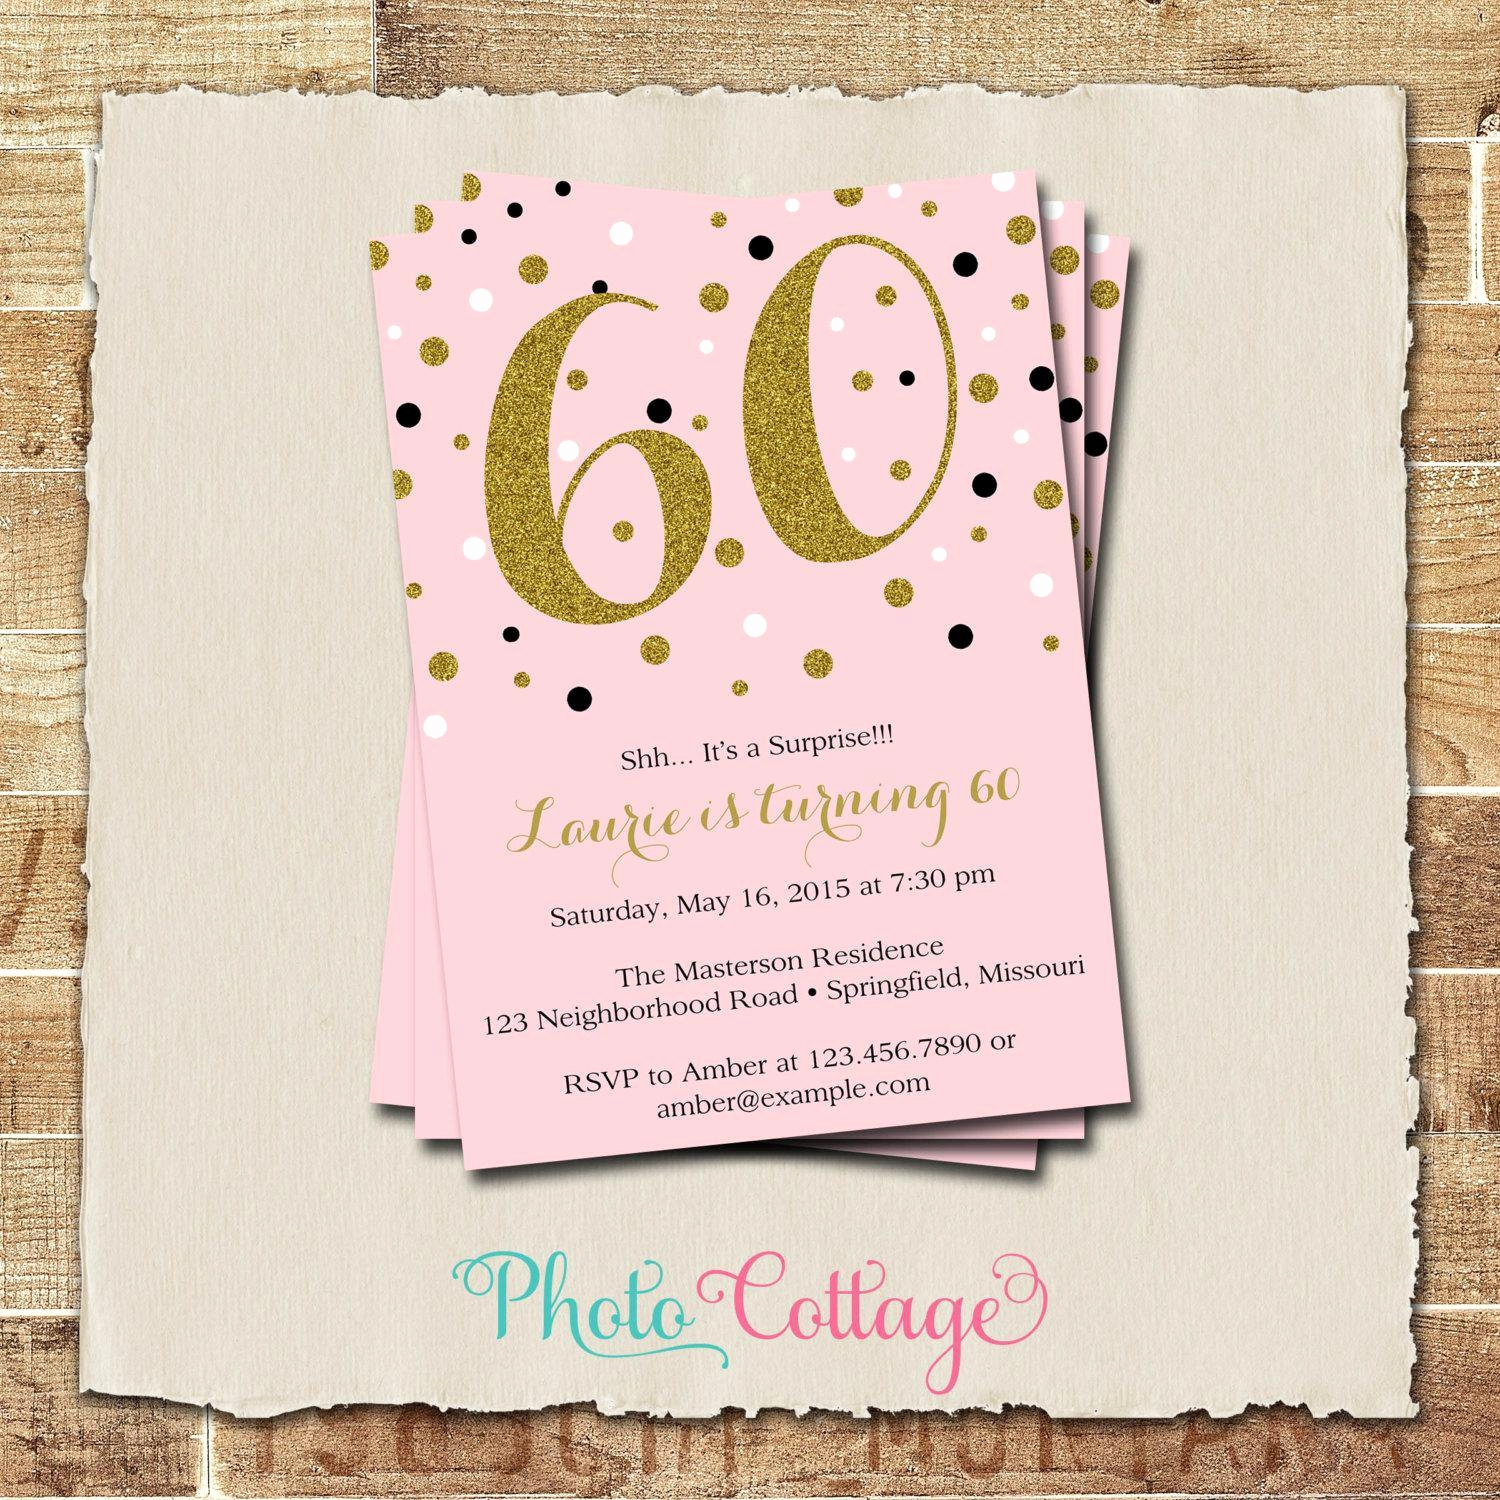 60th birthday card messages ; 60th-birthday-card-messages-for-dad-luxury-60th-birthday-invitations-60th-birthday-invitations-for-dad-of-60th-birthday-card-messages-for-dad